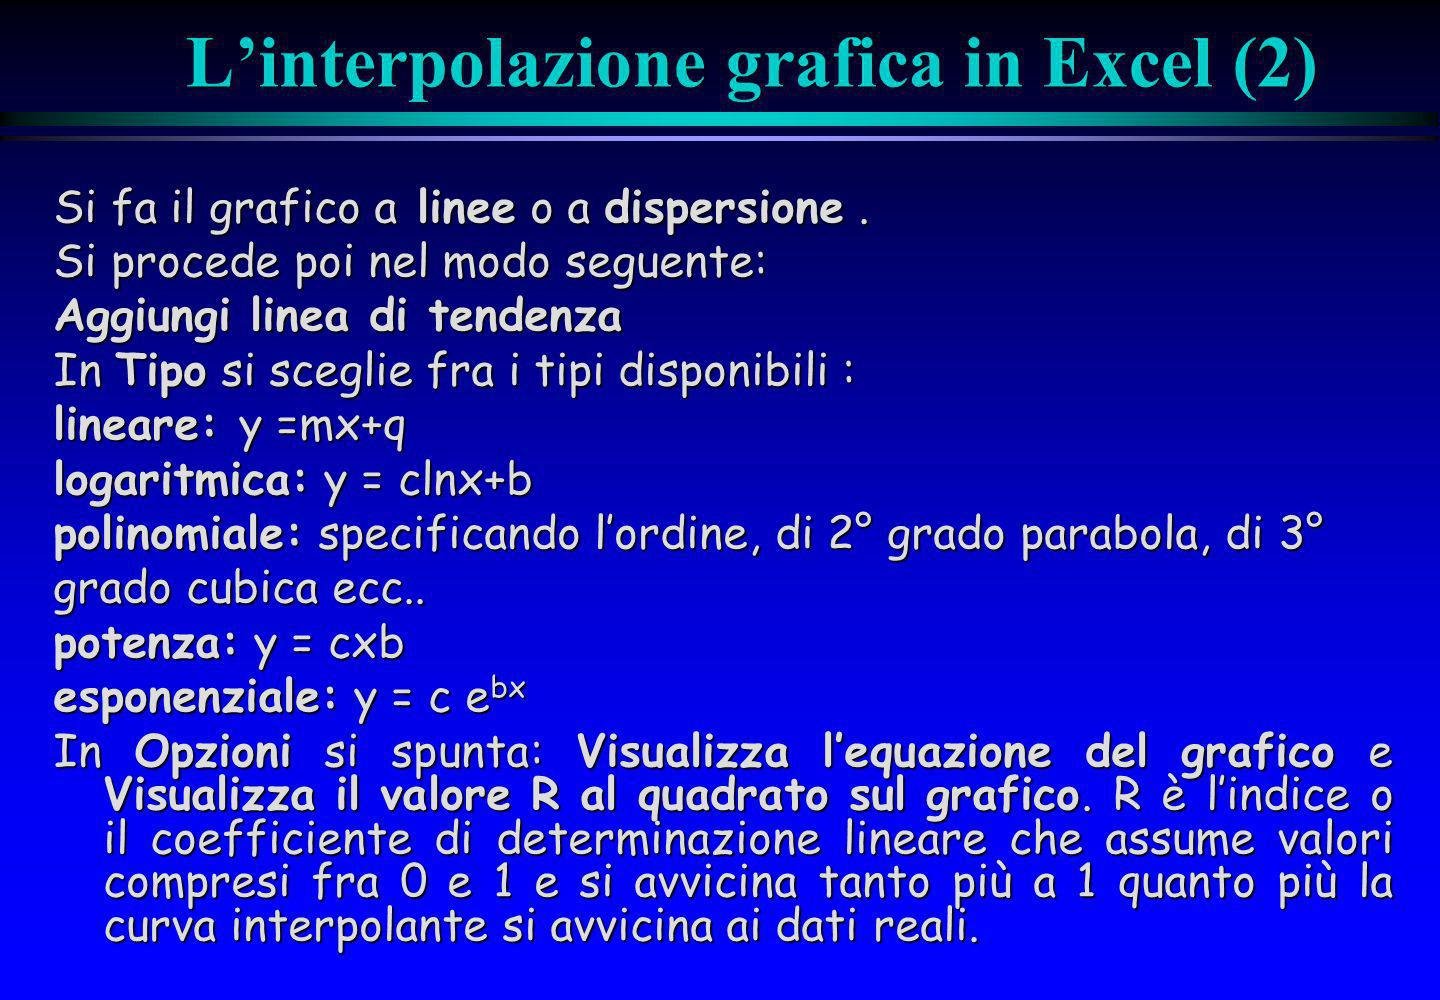 L'interpolazione grafica in Excel (2)